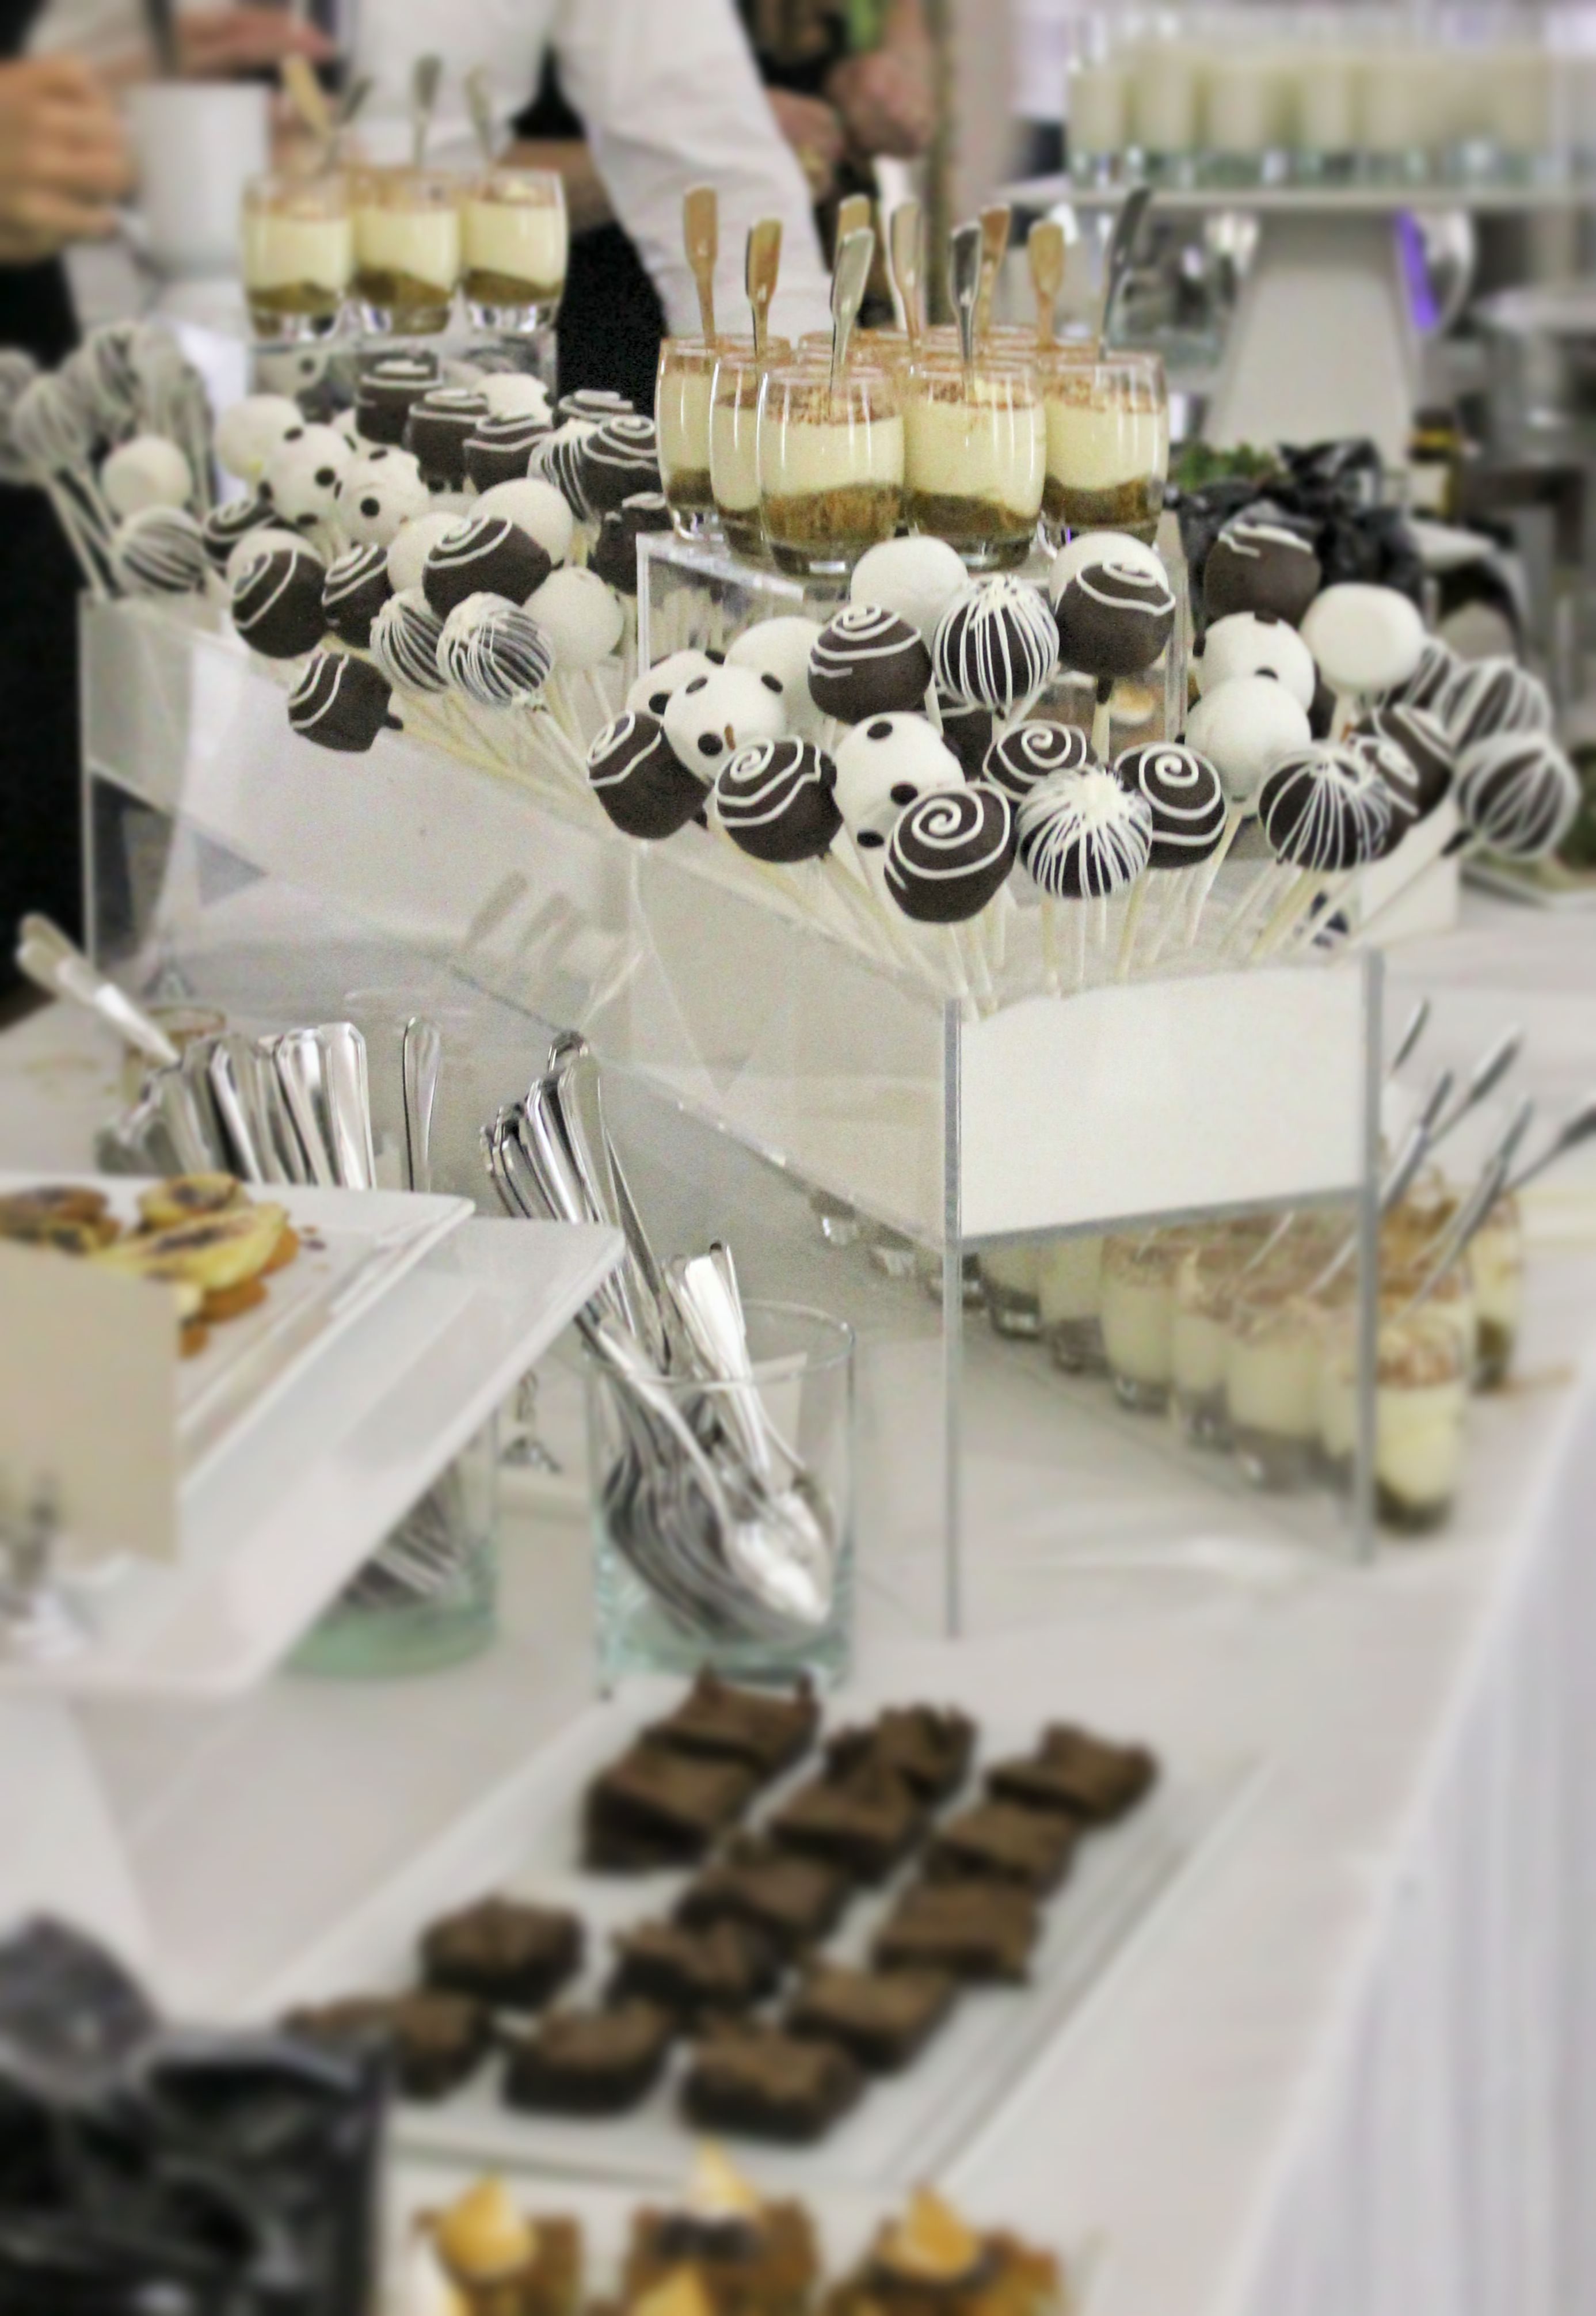 Black & White Chocolate Station // OnTheMarc // onthemarcevents.com // #onthemarcevents